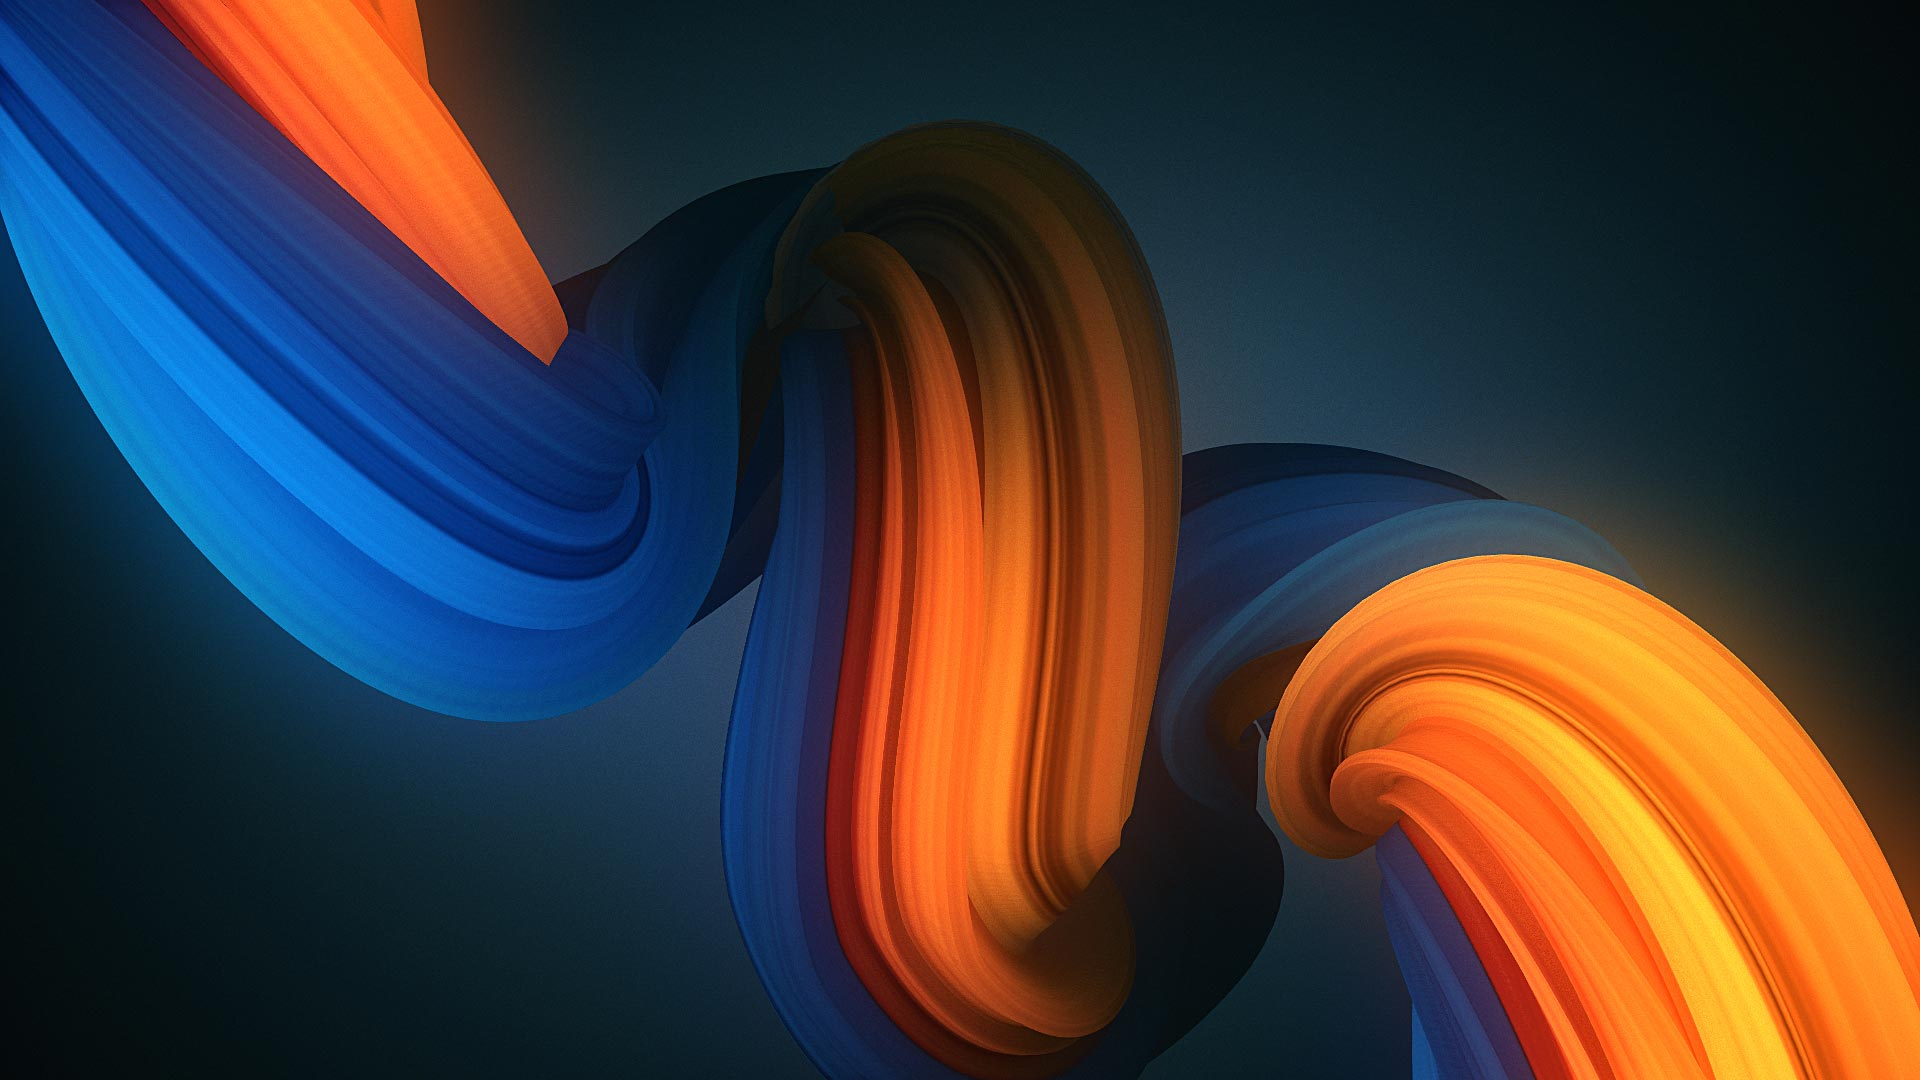 Trapcode Tao is an After Effects plugin from Red Giant for motion graphics and VFX